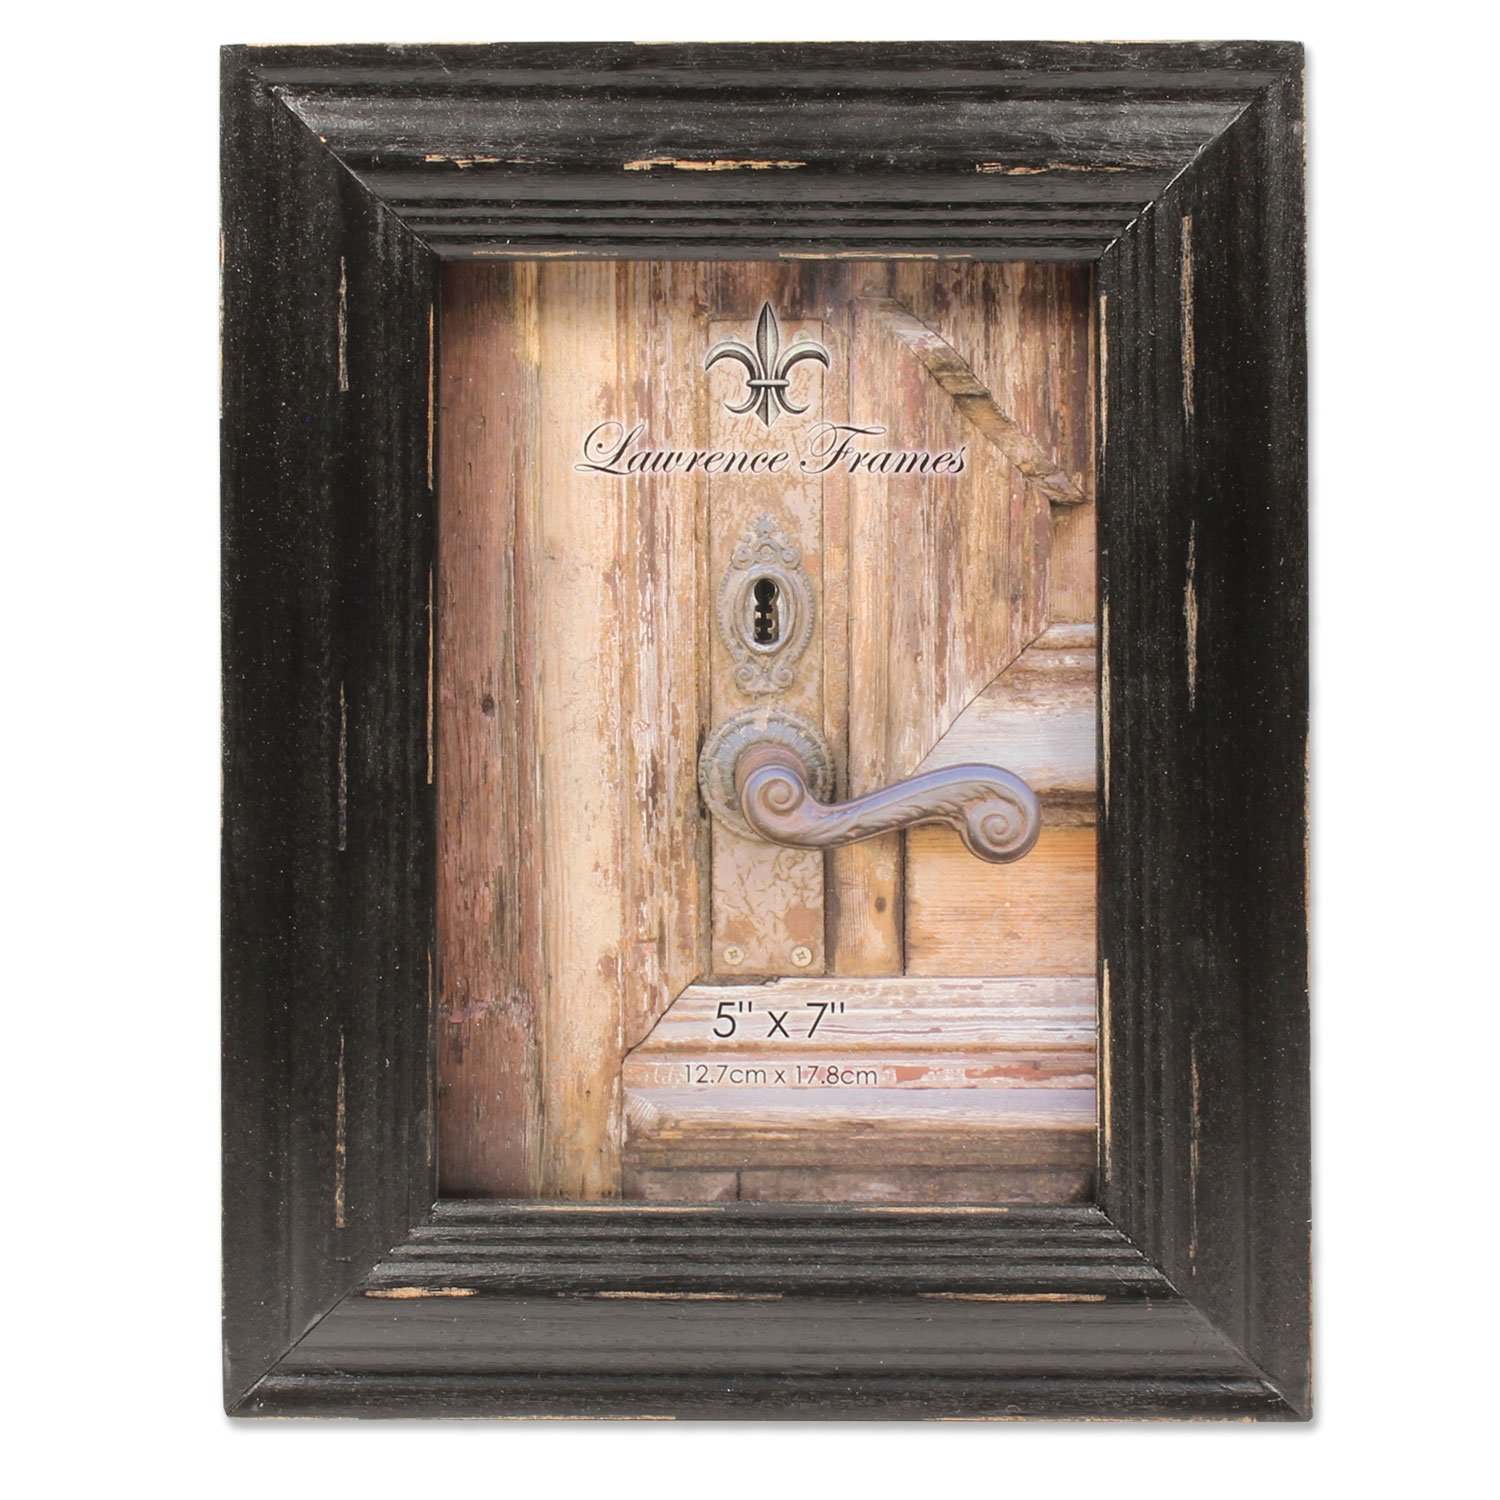 5x7 Weathered Black Wood Picture Frame by Lawrence Frames